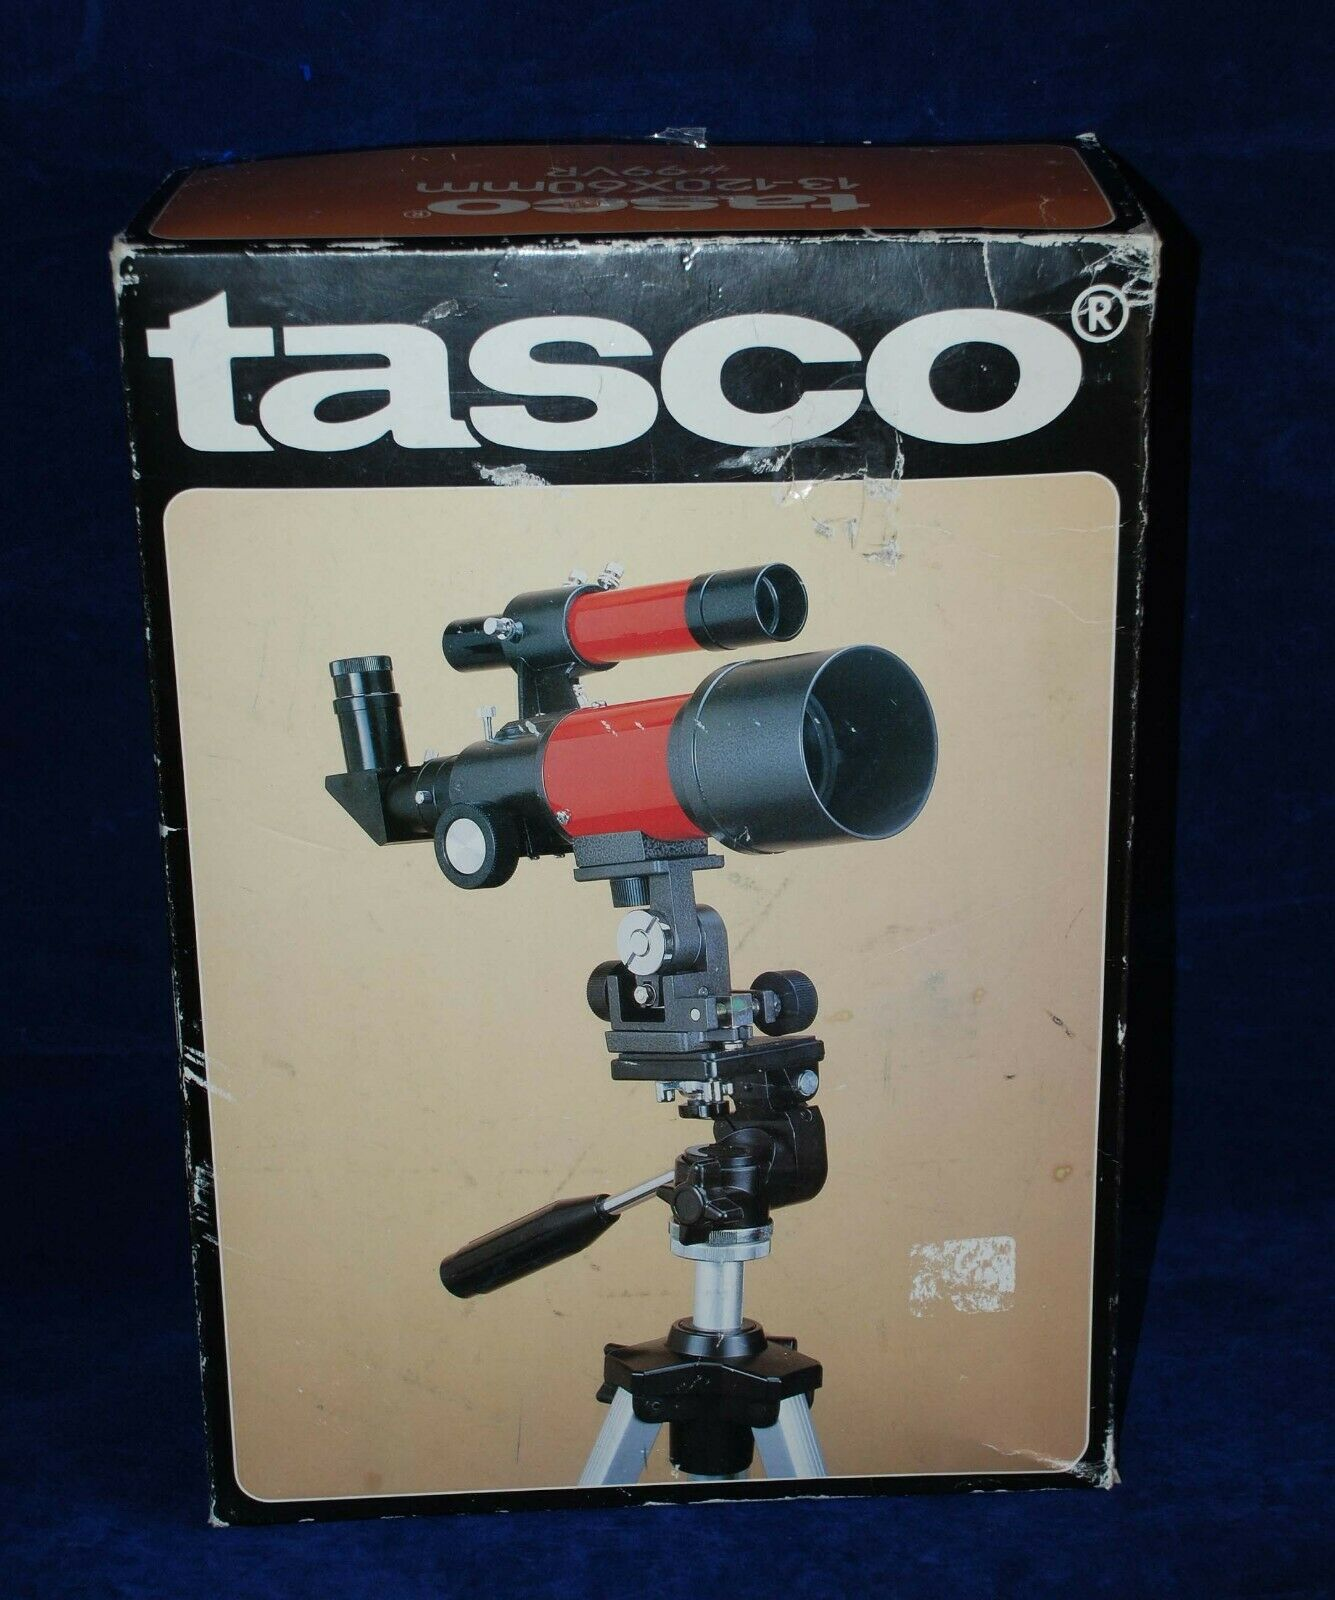 Vtg Tasco 9VR Portable Telephoto Camera Lens Astronomy Photography Telescope